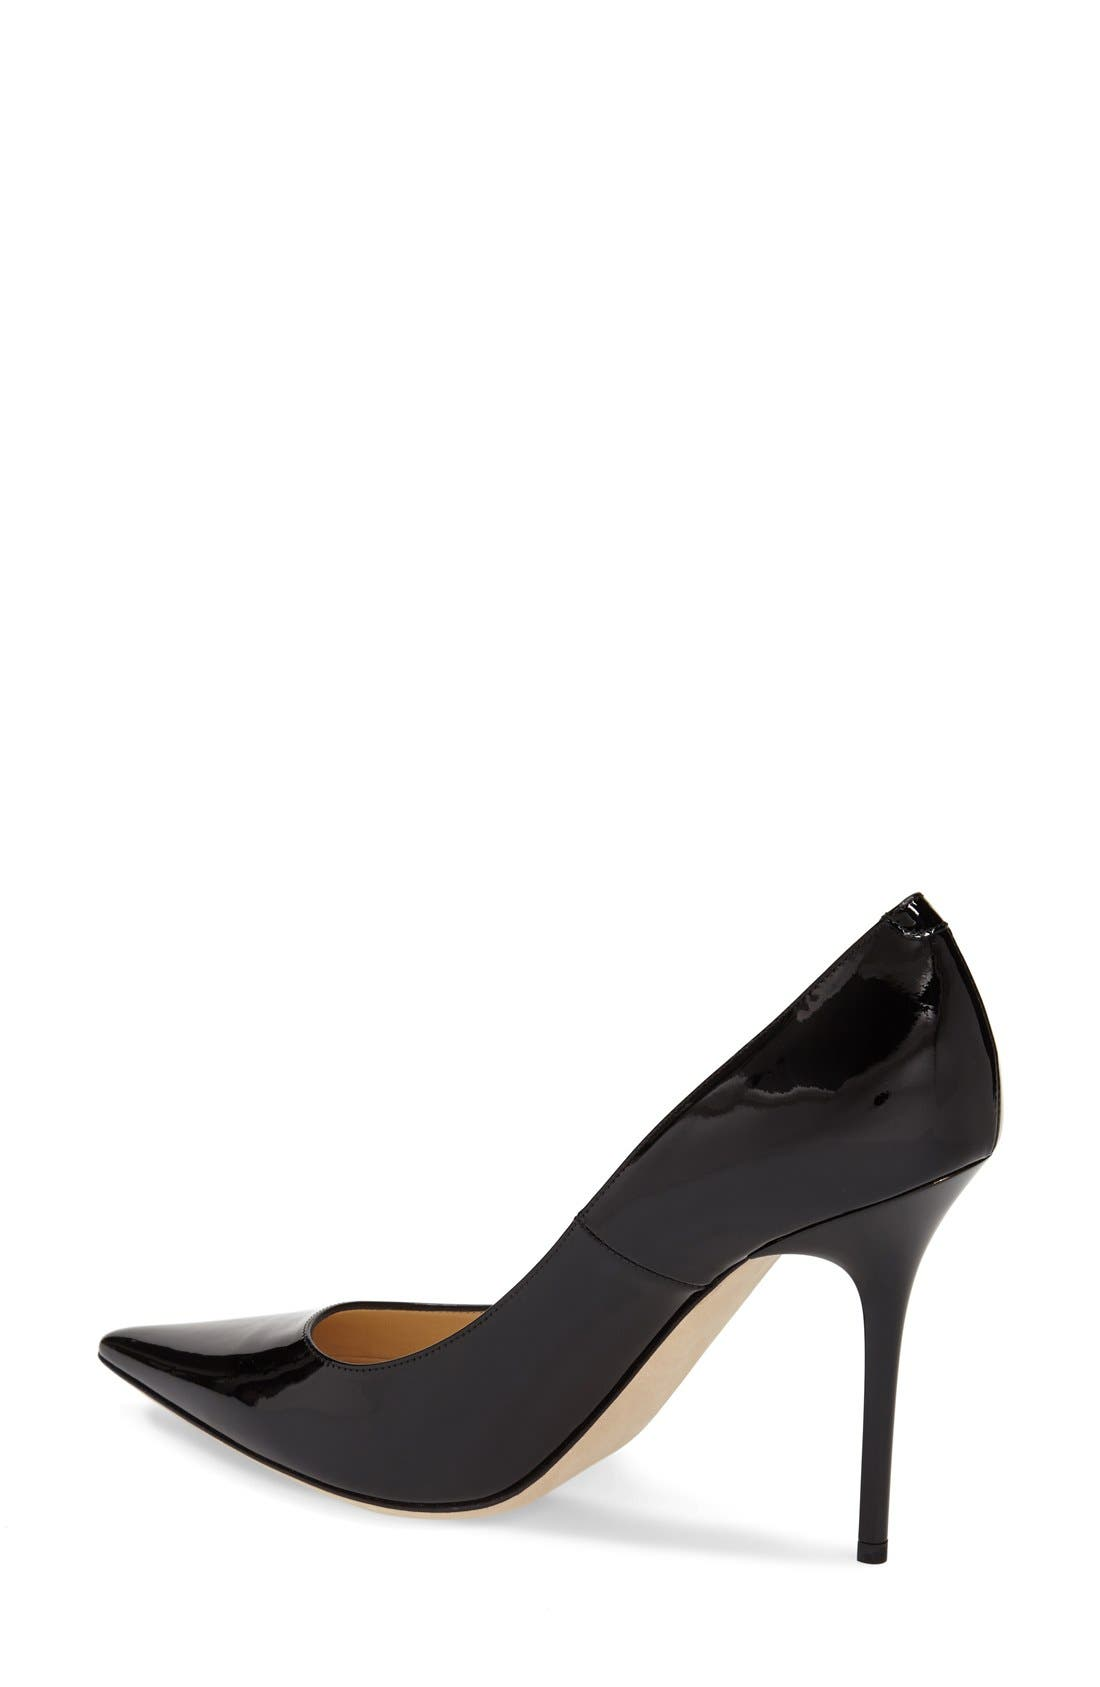 'Abel' Pointy Toe Pump,                             Alternate thumbnail 4, color,                             001